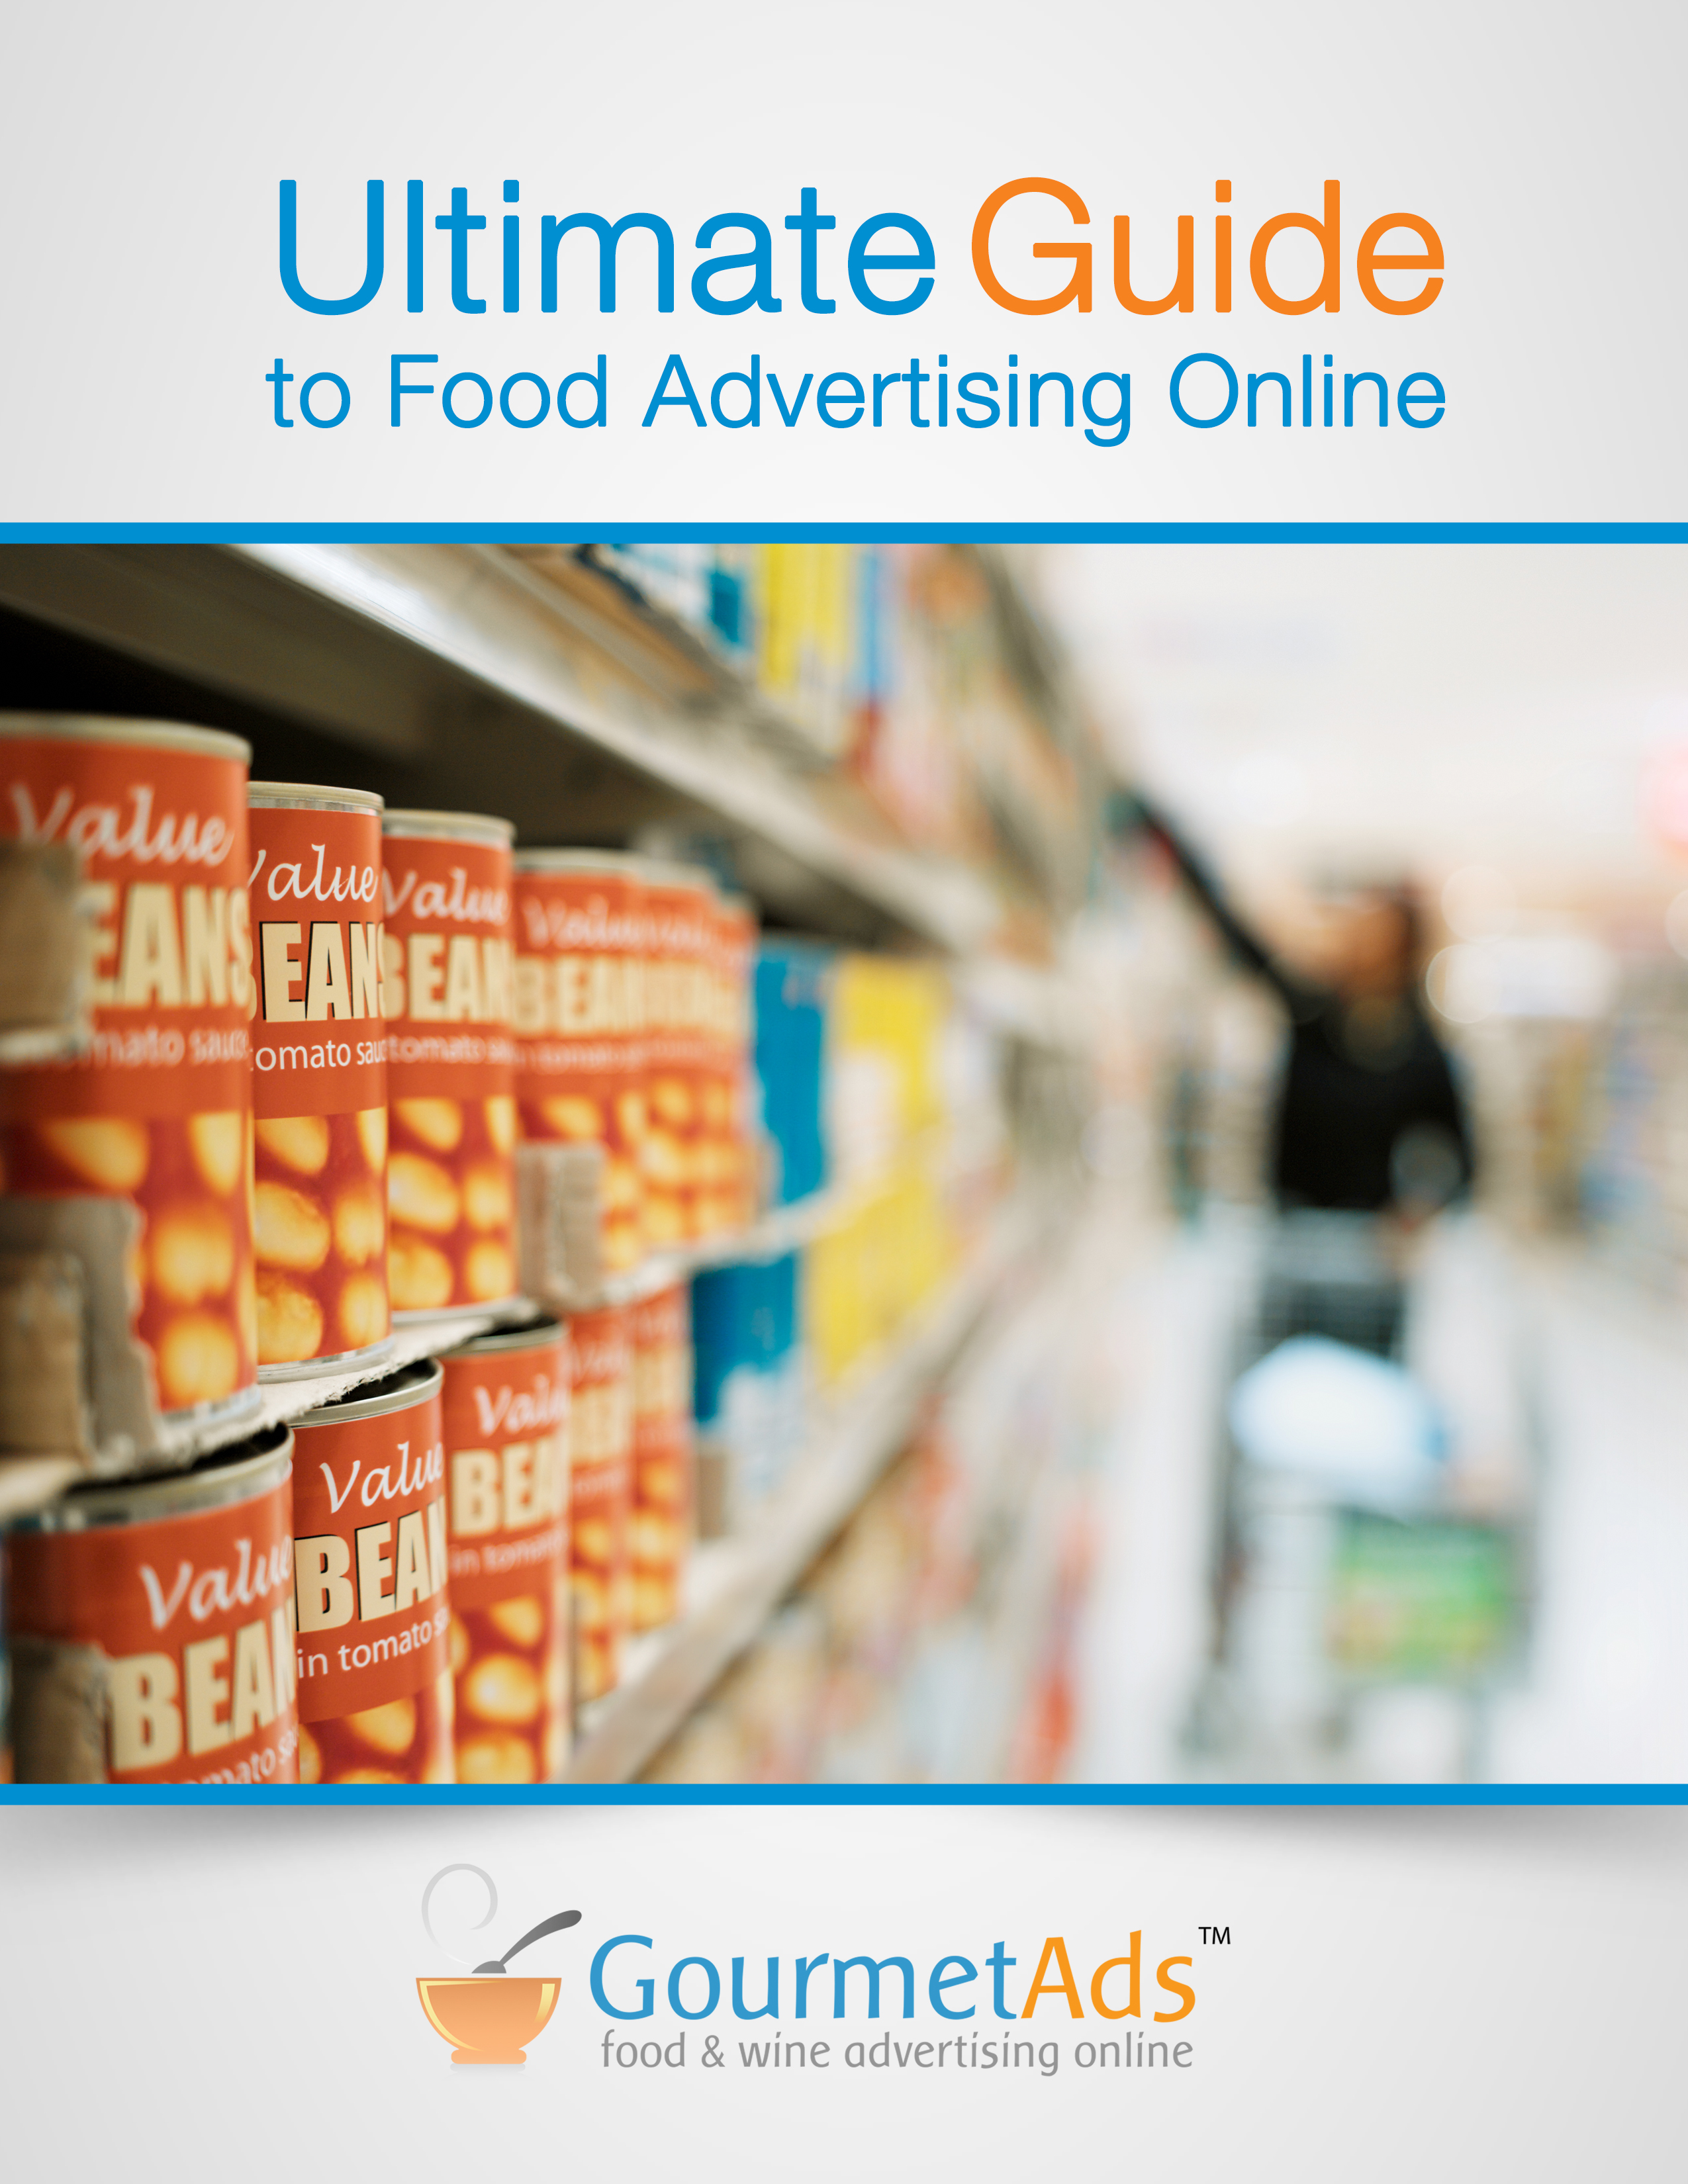 Global Ad Network Gourmet Ads Offers Tips For Food